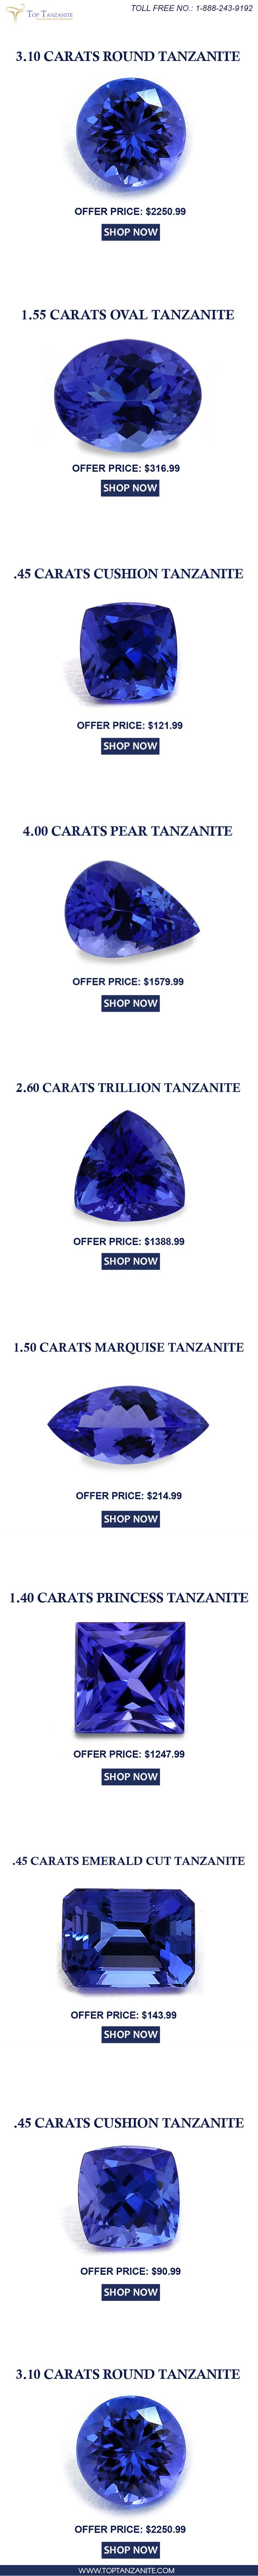 earrings in and images the of pinterest jewelry handmade combo rings studs top gemstones best tanzanite specializes price gold offers toptanzanite white manufacturing on